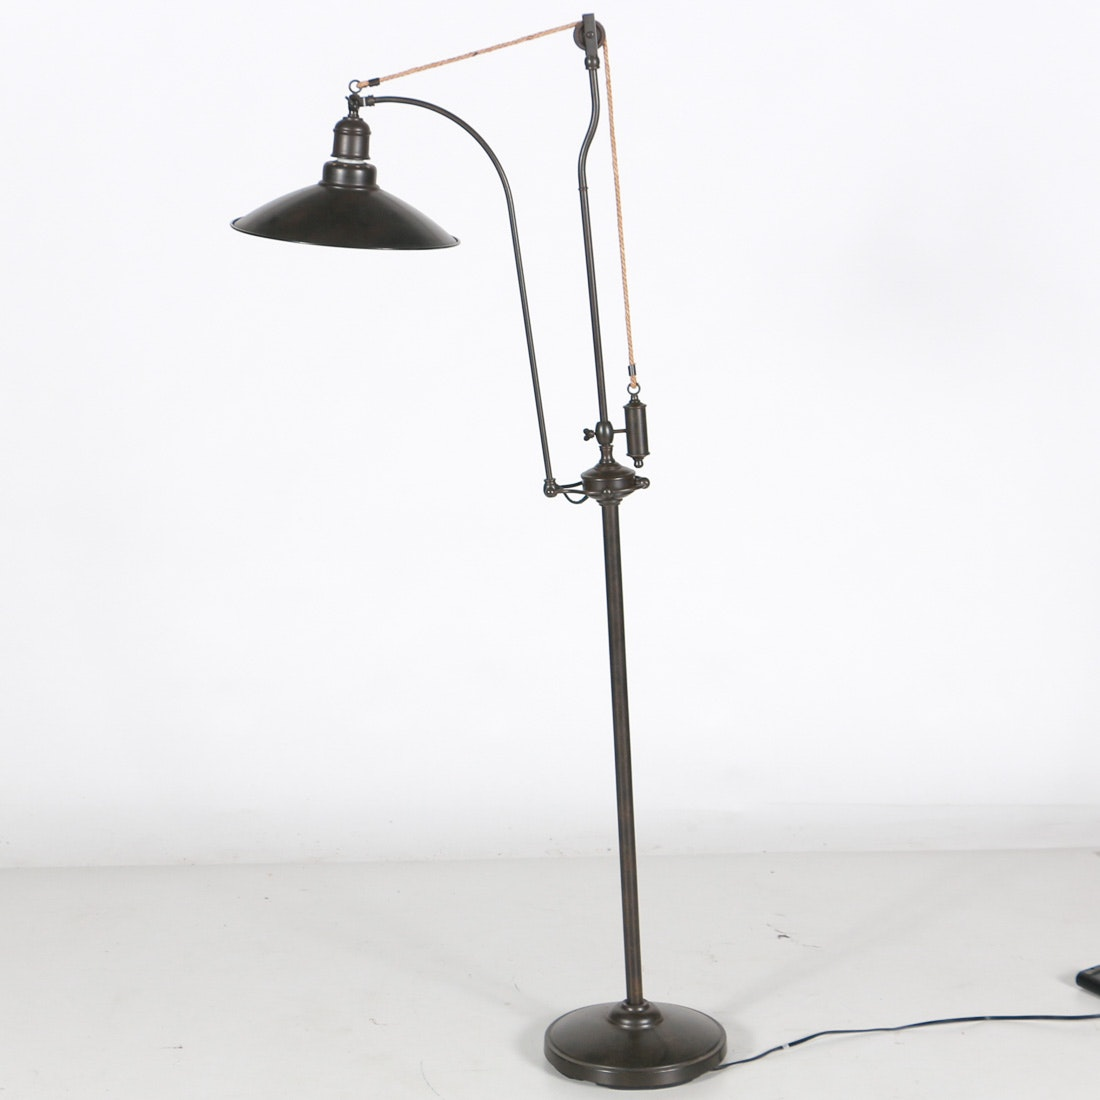 Industrial Style Floor Lamp with Decorative Pulley